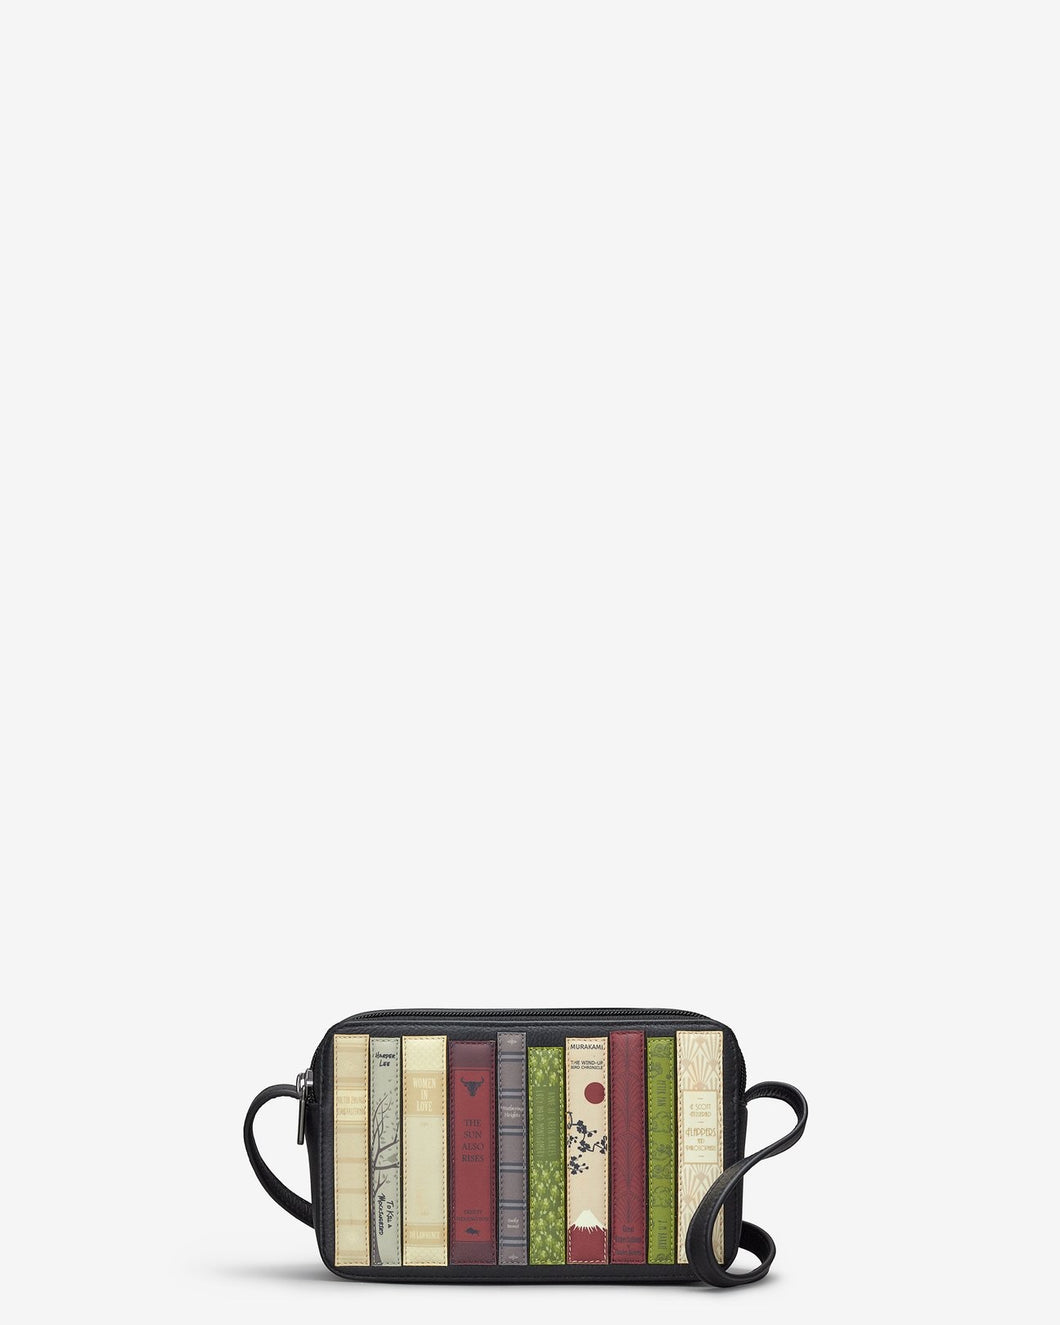 Yoshi Bookworm Black Leather Porter Cross Body Bag - Sands Boutique clothing and gifts